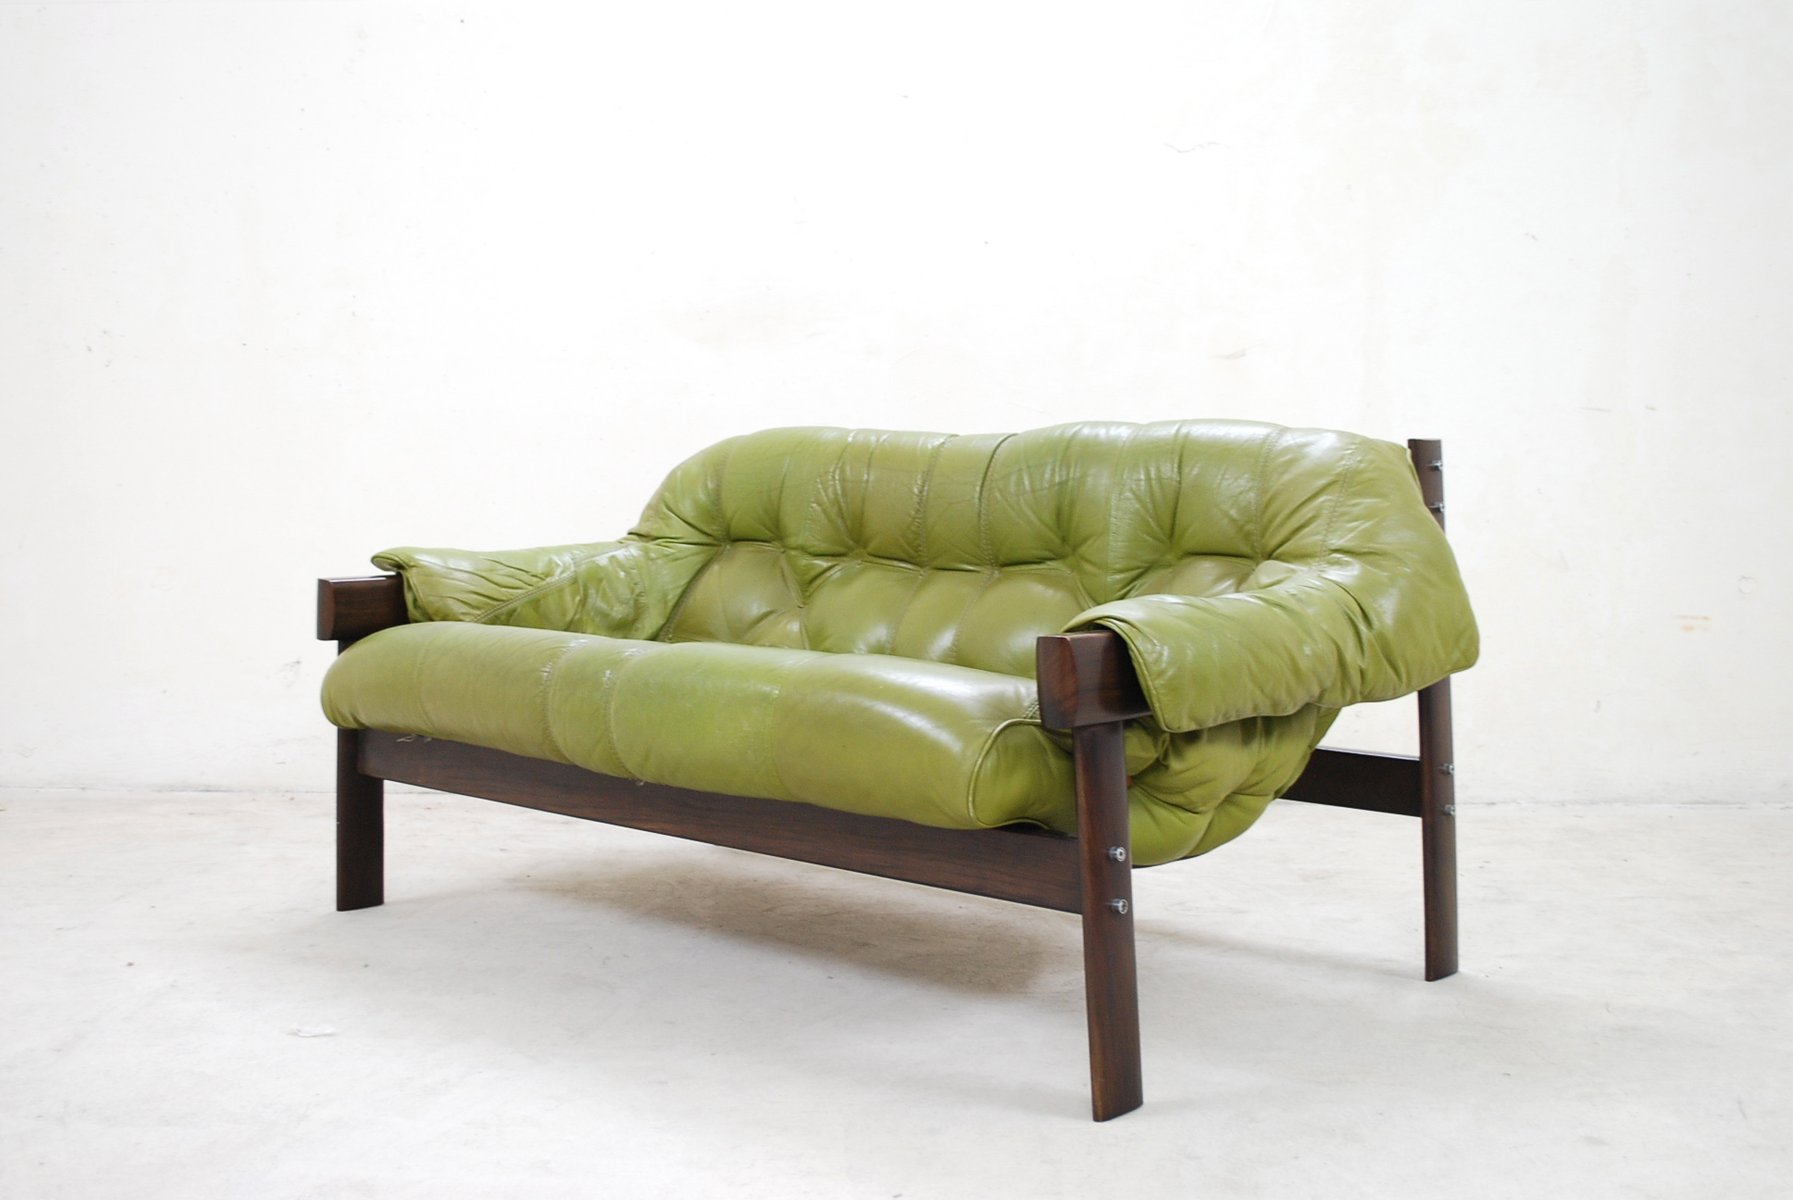 Charmant Model MP 041 Green Leather Sofa From Percival Lafer, 1961 For Sale At Pamono